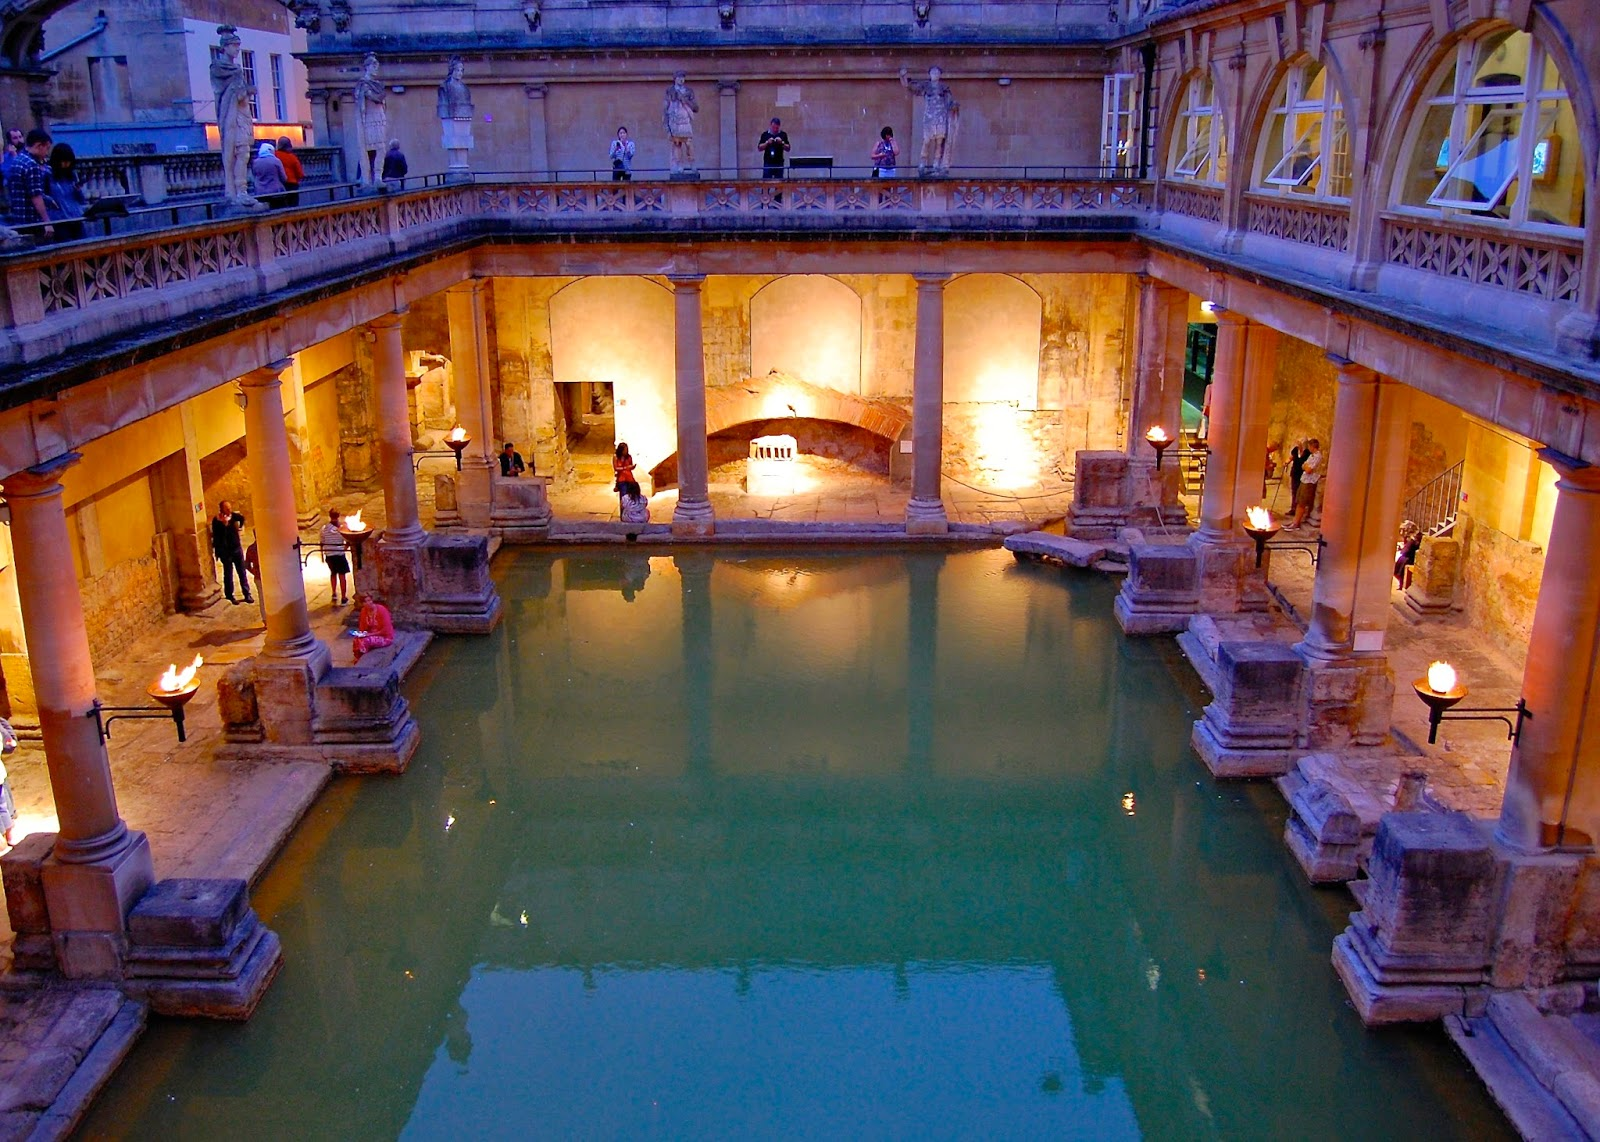 Roman spa from Aquae Sulis in Bath, England